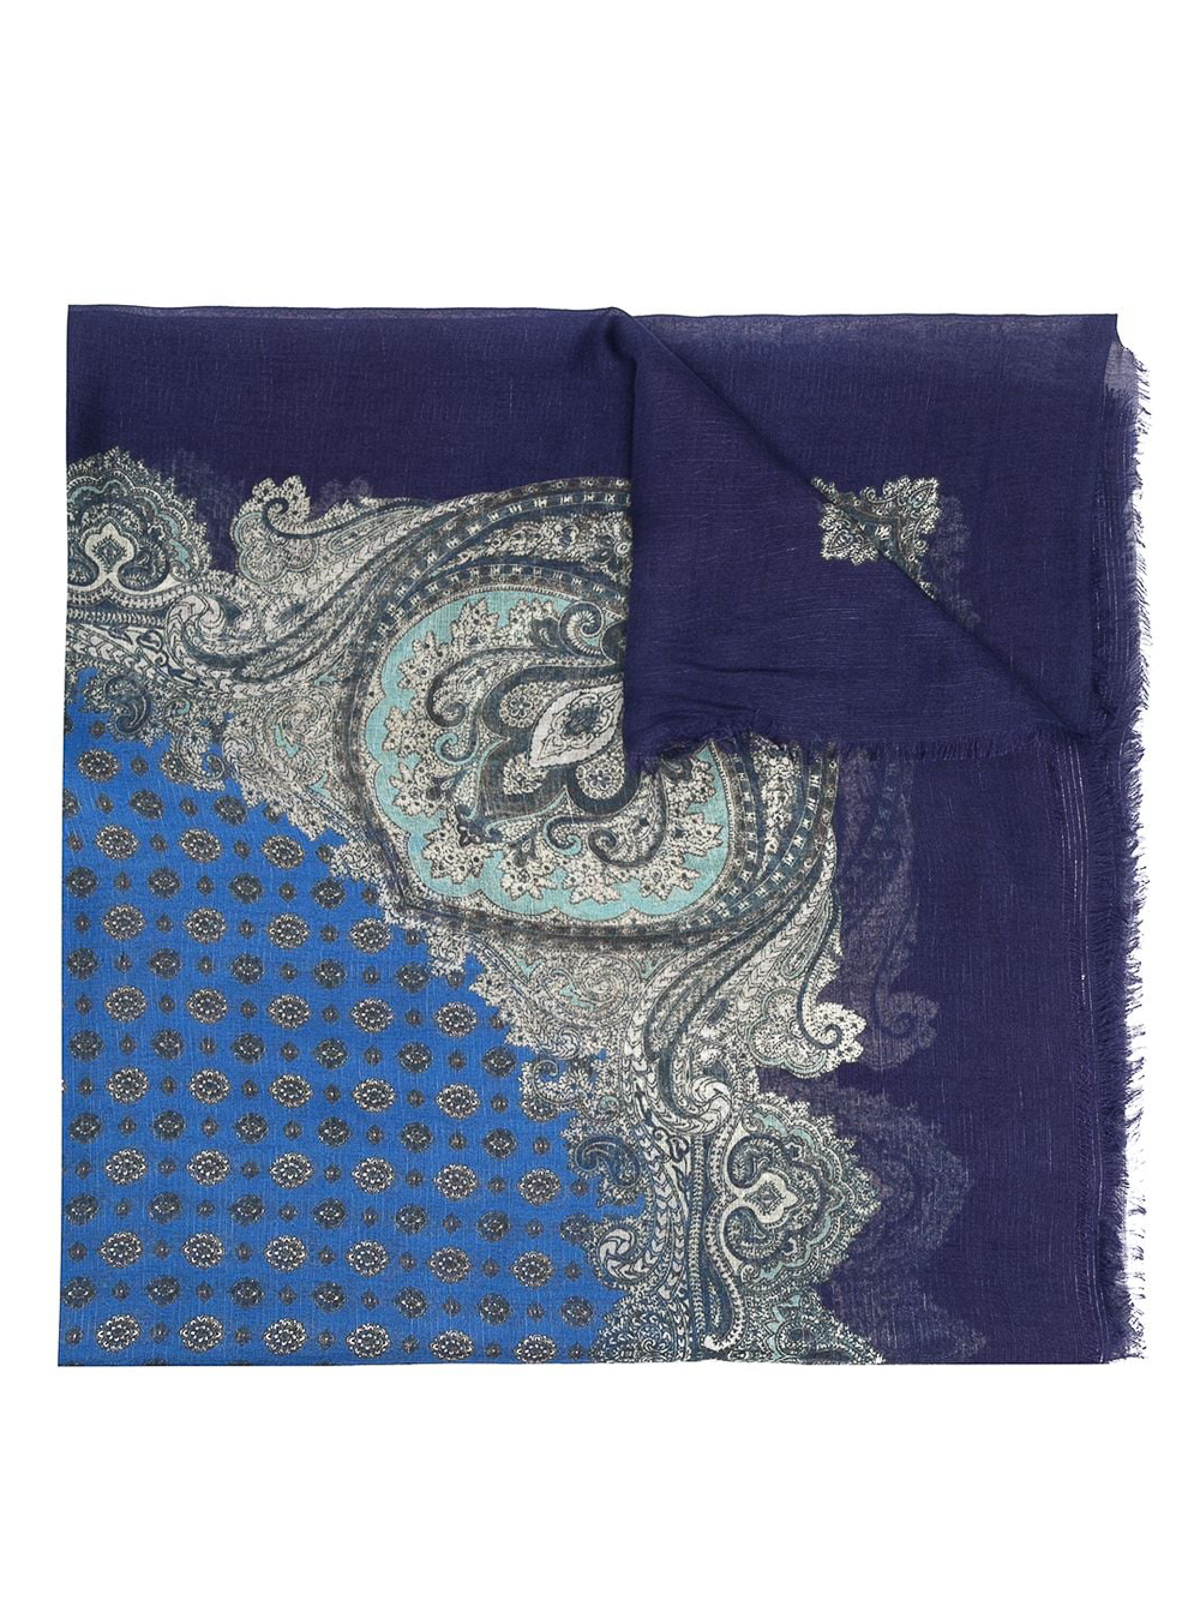 Twinset Scarves PAISLEY PRINT SCARF